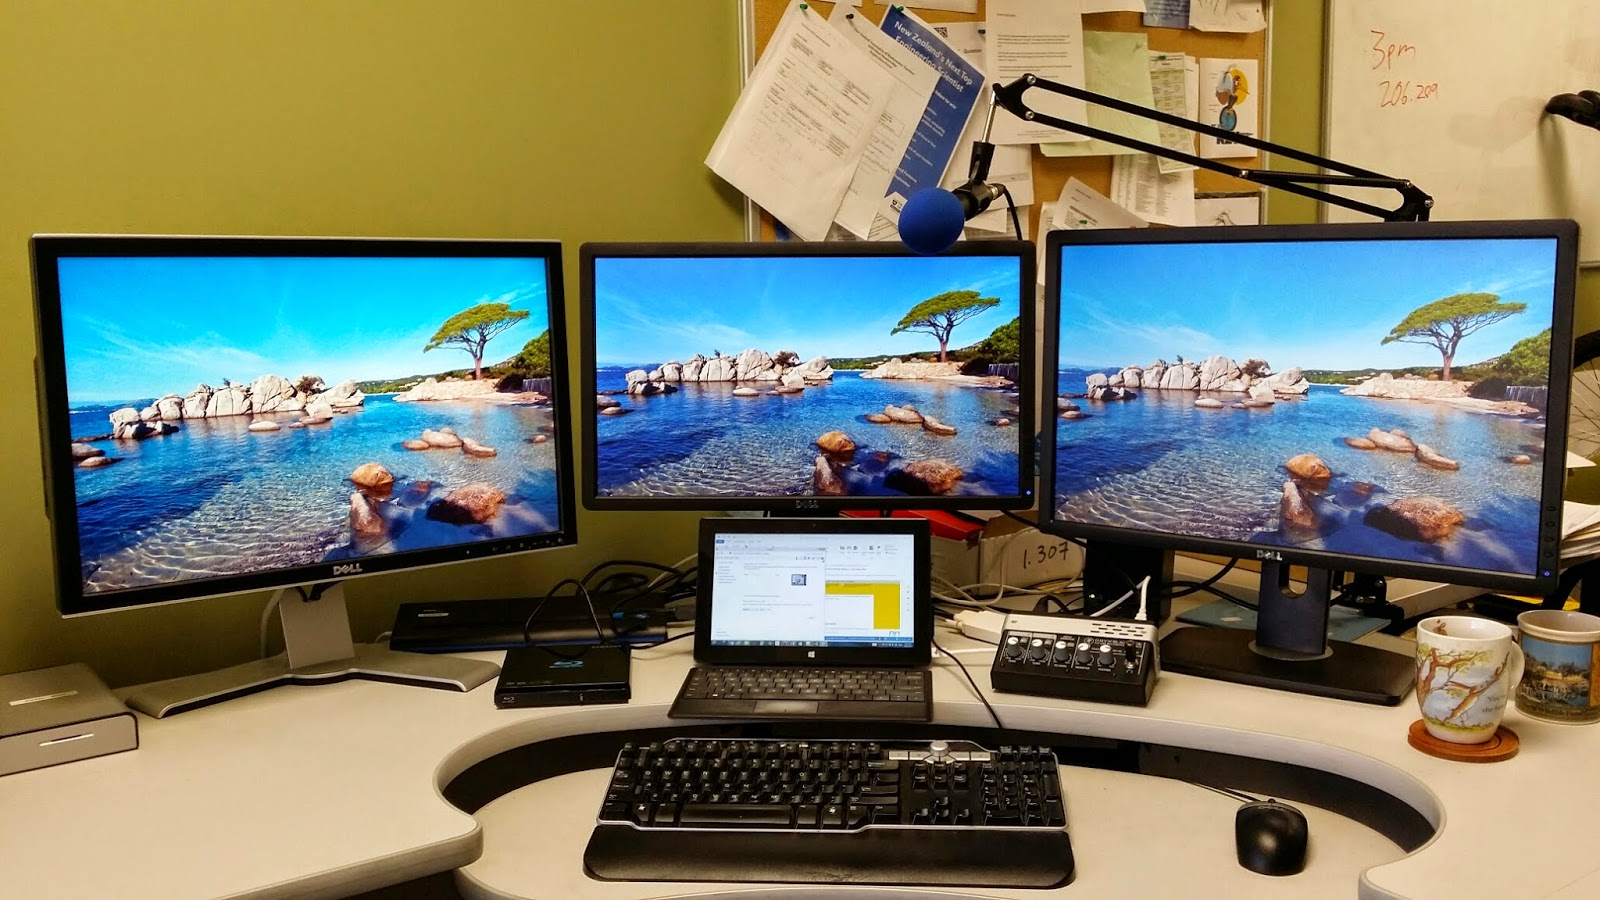 Surface Teaching Deep Learning How To Set Up Three Monitors With A Dual Monitor Wiring Diagram Pro